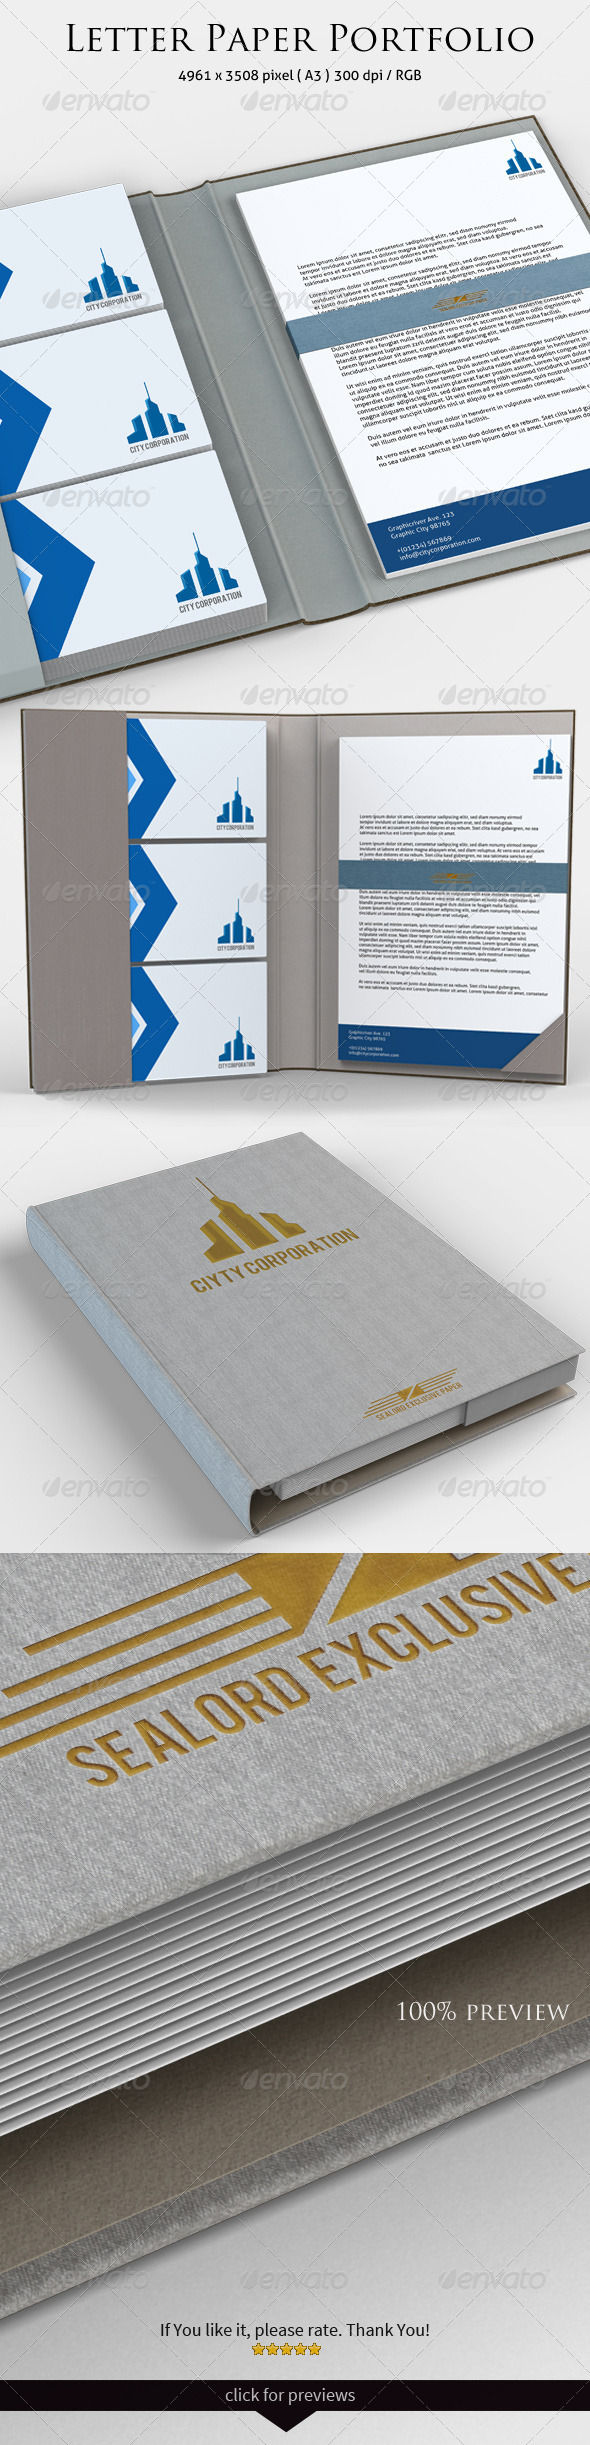 GraphicRiver Letter Paper Portfolio Mock-up 3454211